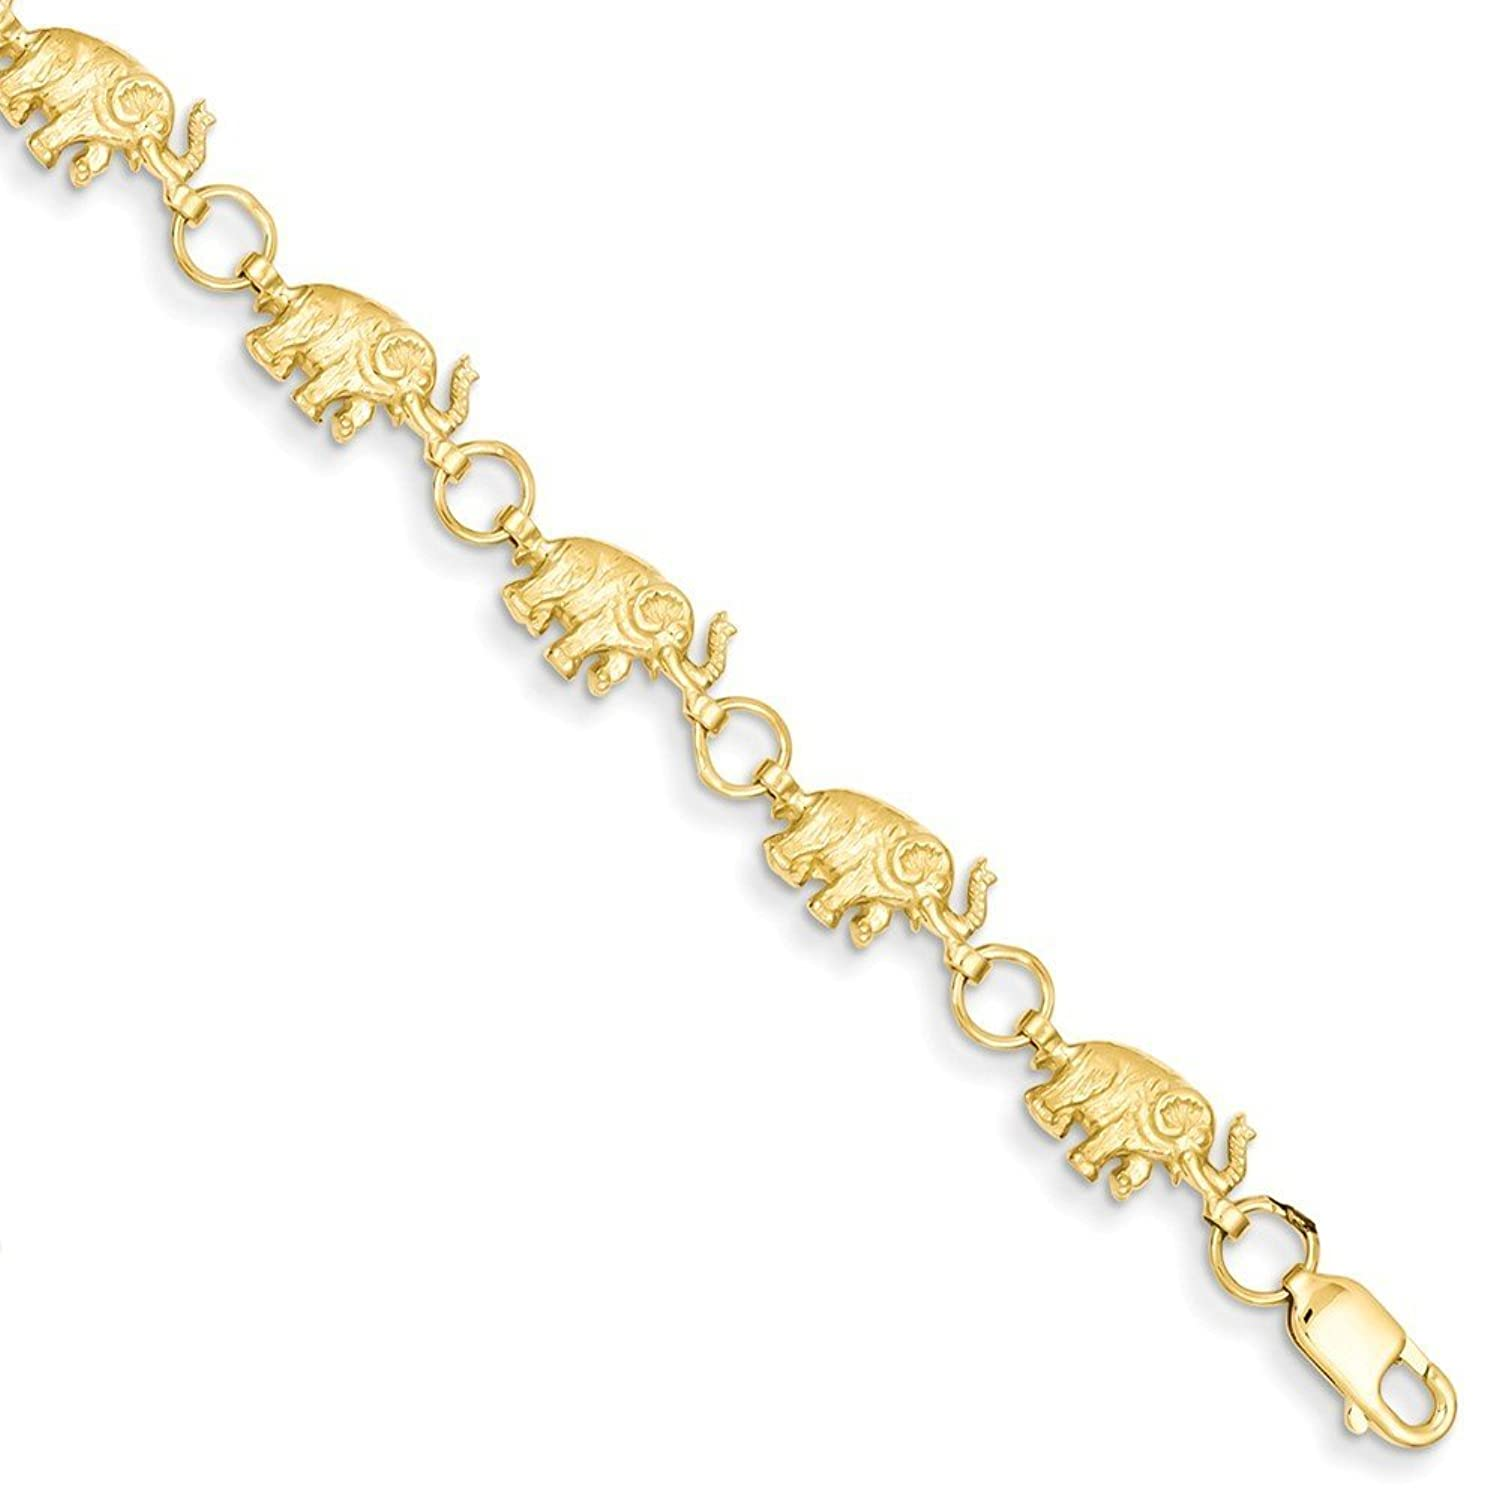 14K Gold 8in Diamond-cut Small Elephants with Trunks Raised Bracelet 8 Inches